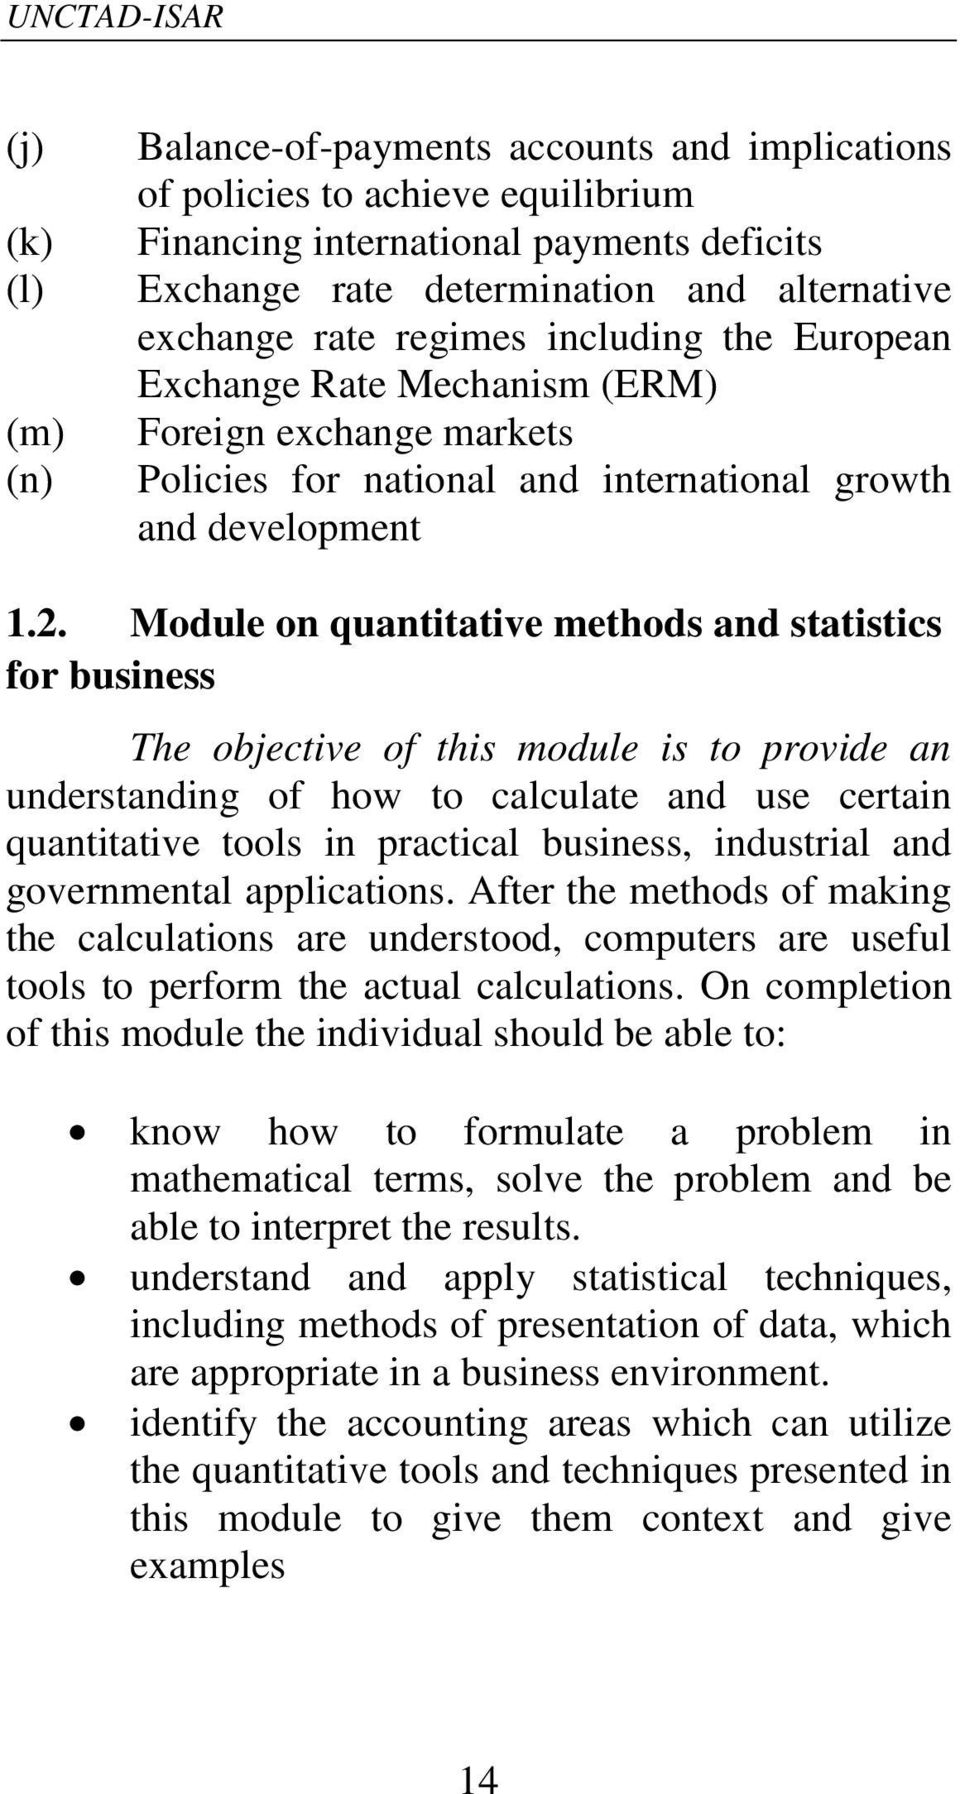 Module on quantitative methods and statistics for business The objective of this module is to provide an understanding of how to calculate and use certain quantitative tools in practical business,